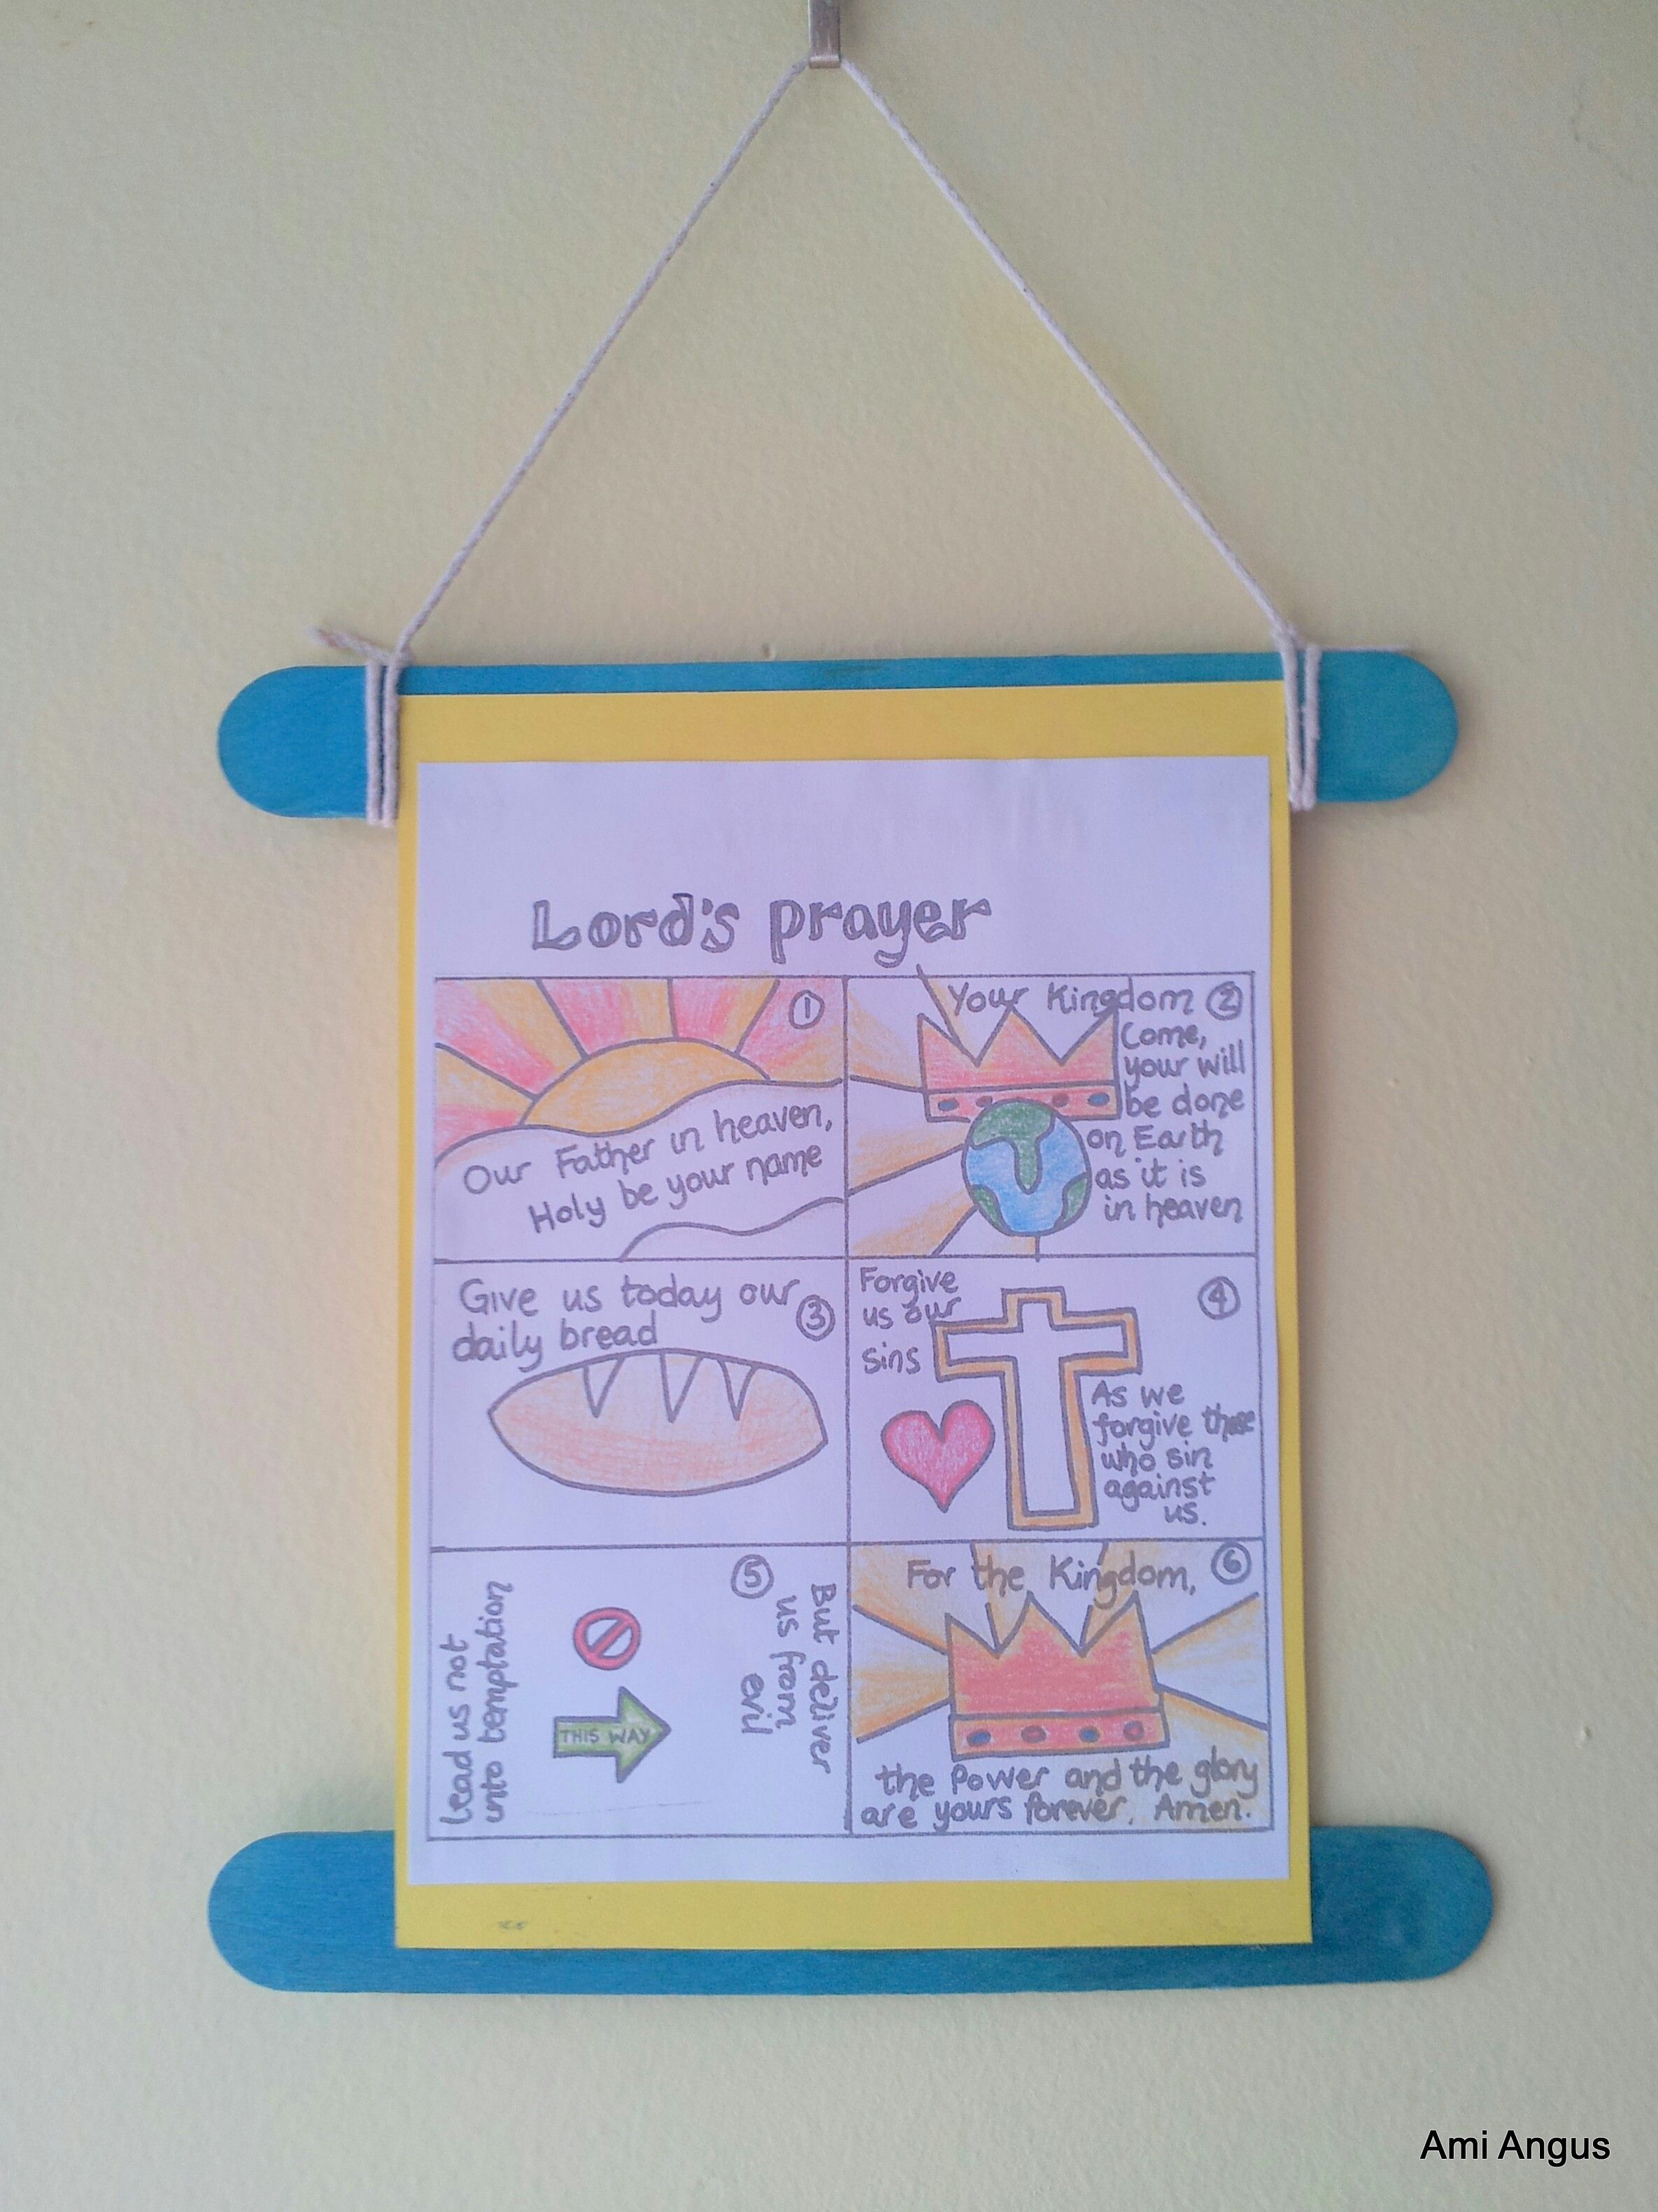 We Were Learning About The Lord S Prayer In Our Pre